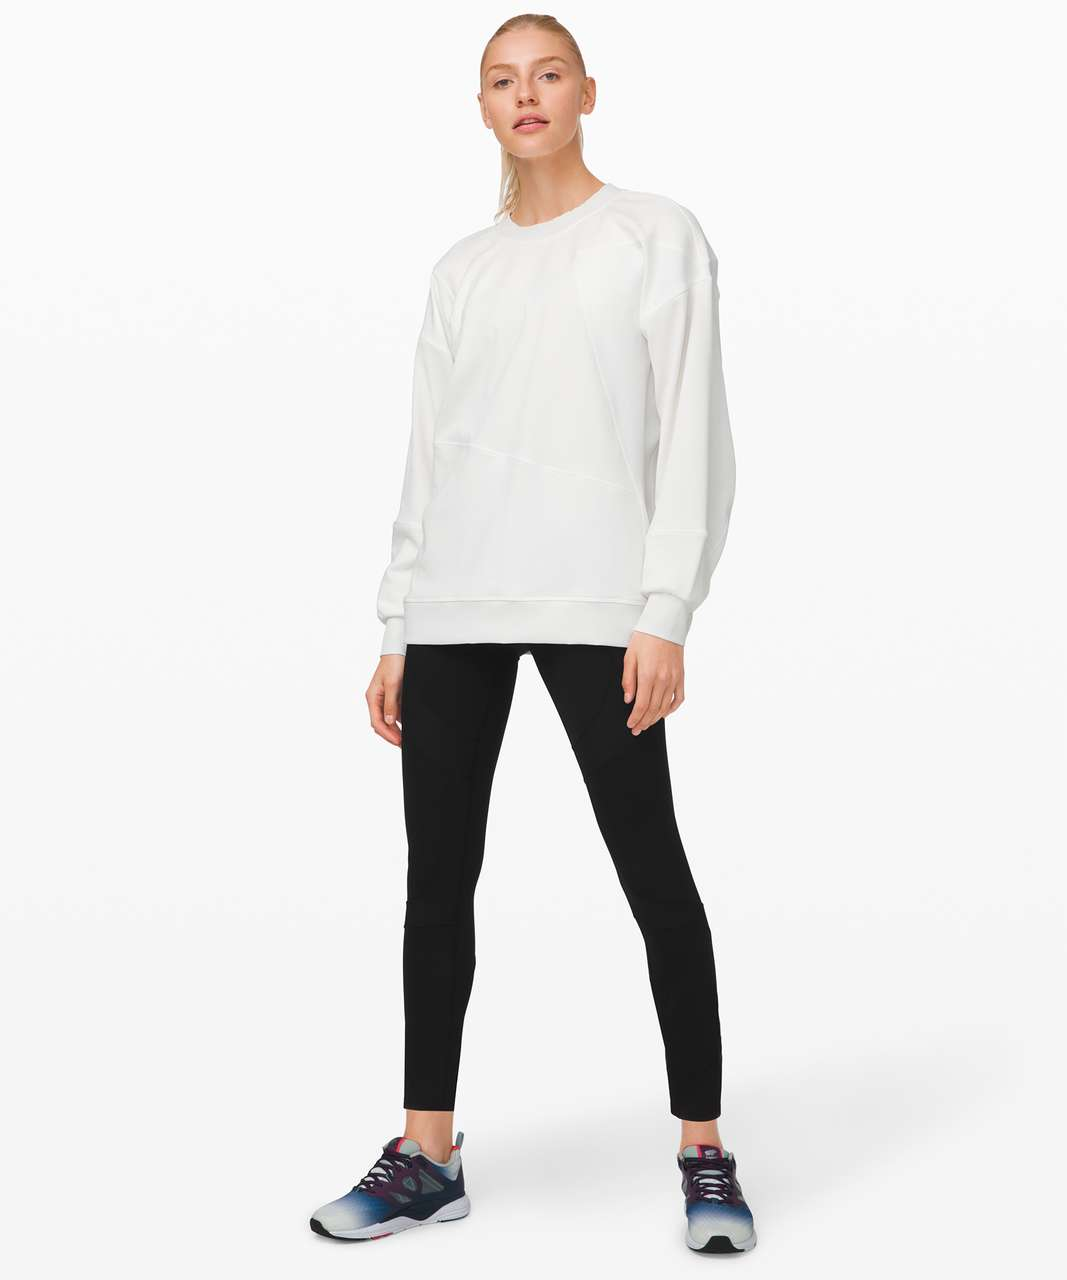 Lululemon Perfectly Oversized Crew - White (First Release)